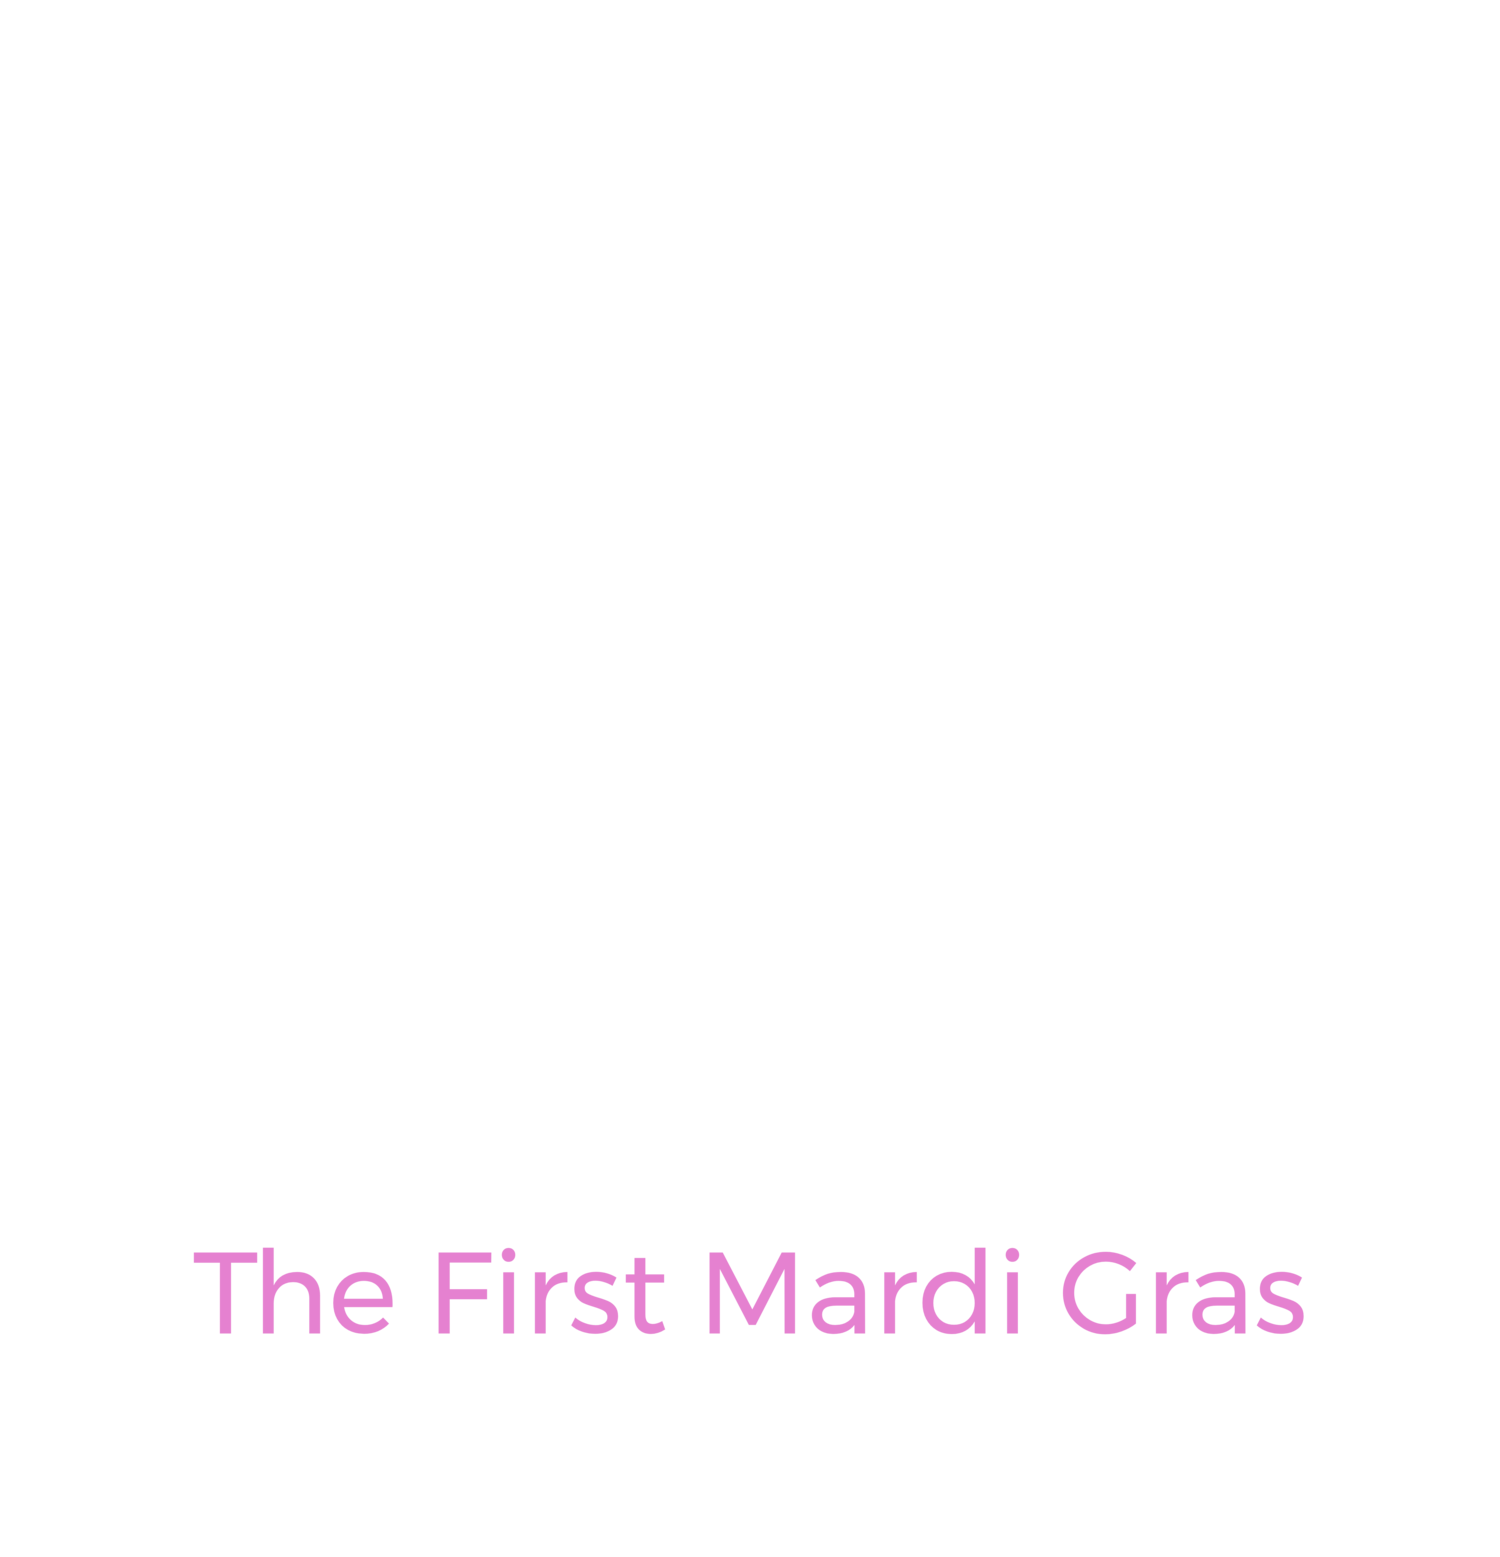 The first Mardi Gras 78ers